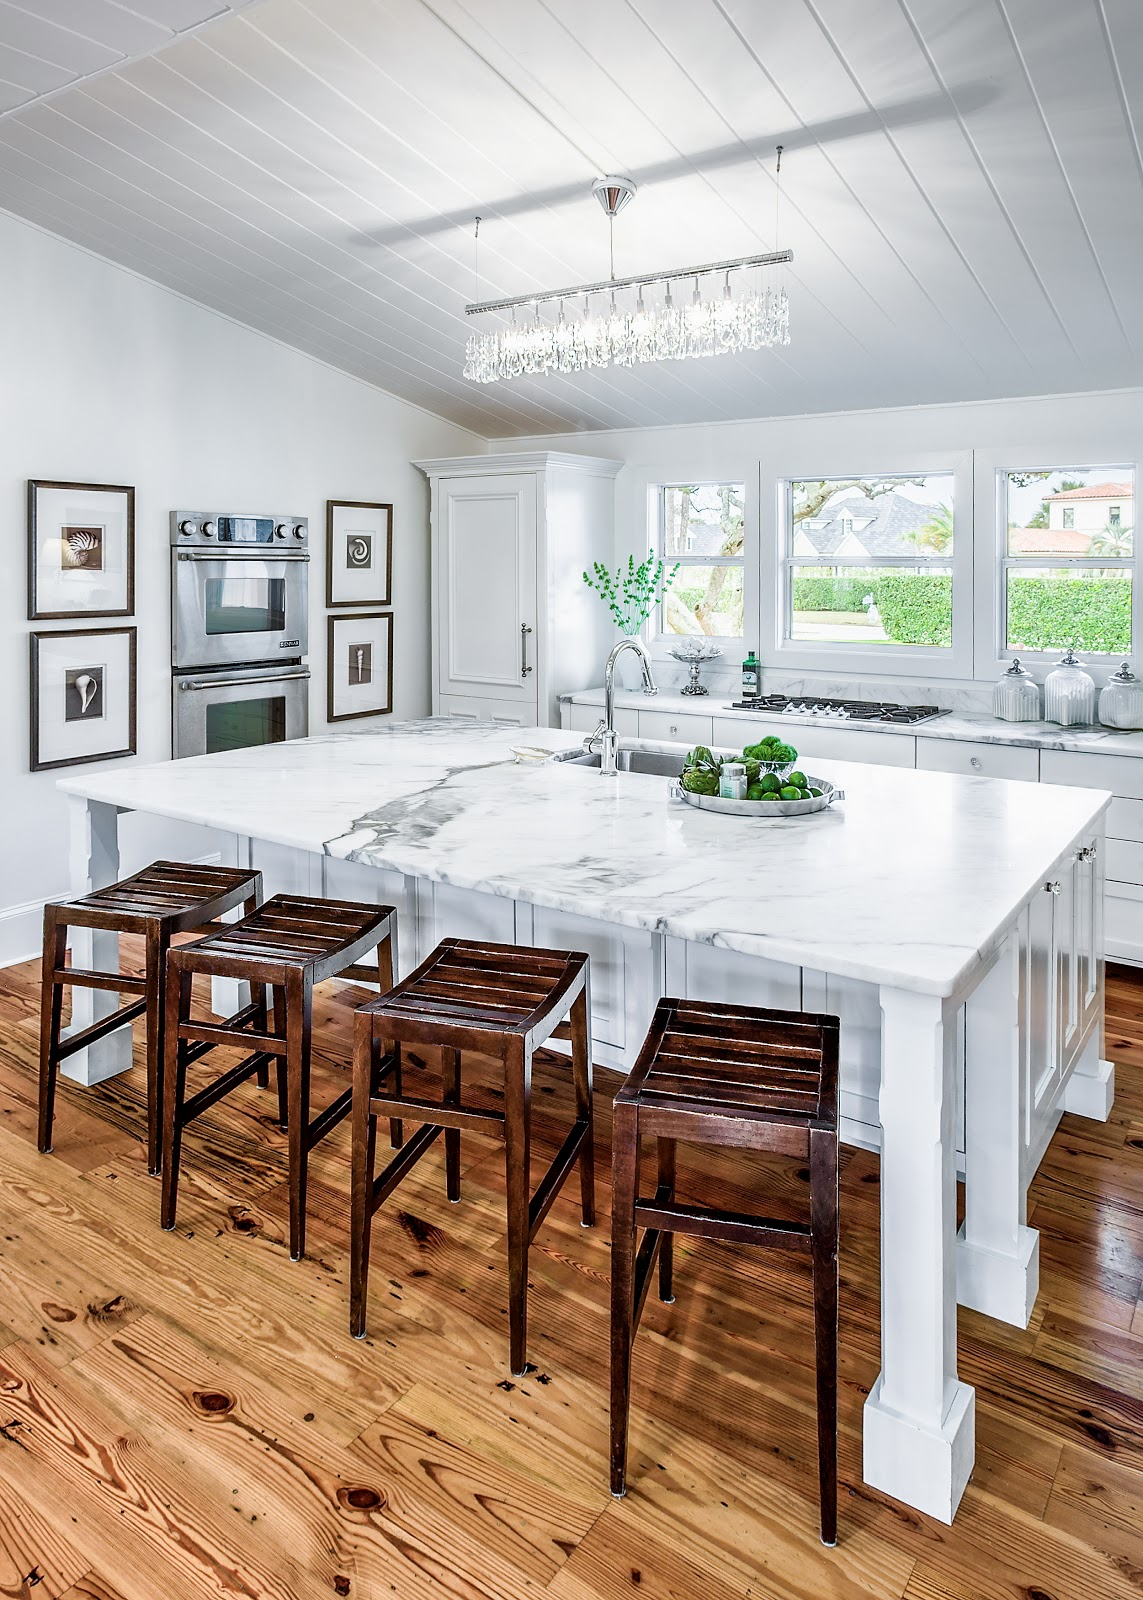 Contemporary Light Fixture Complete This Coastal Contemporary Kitchen.